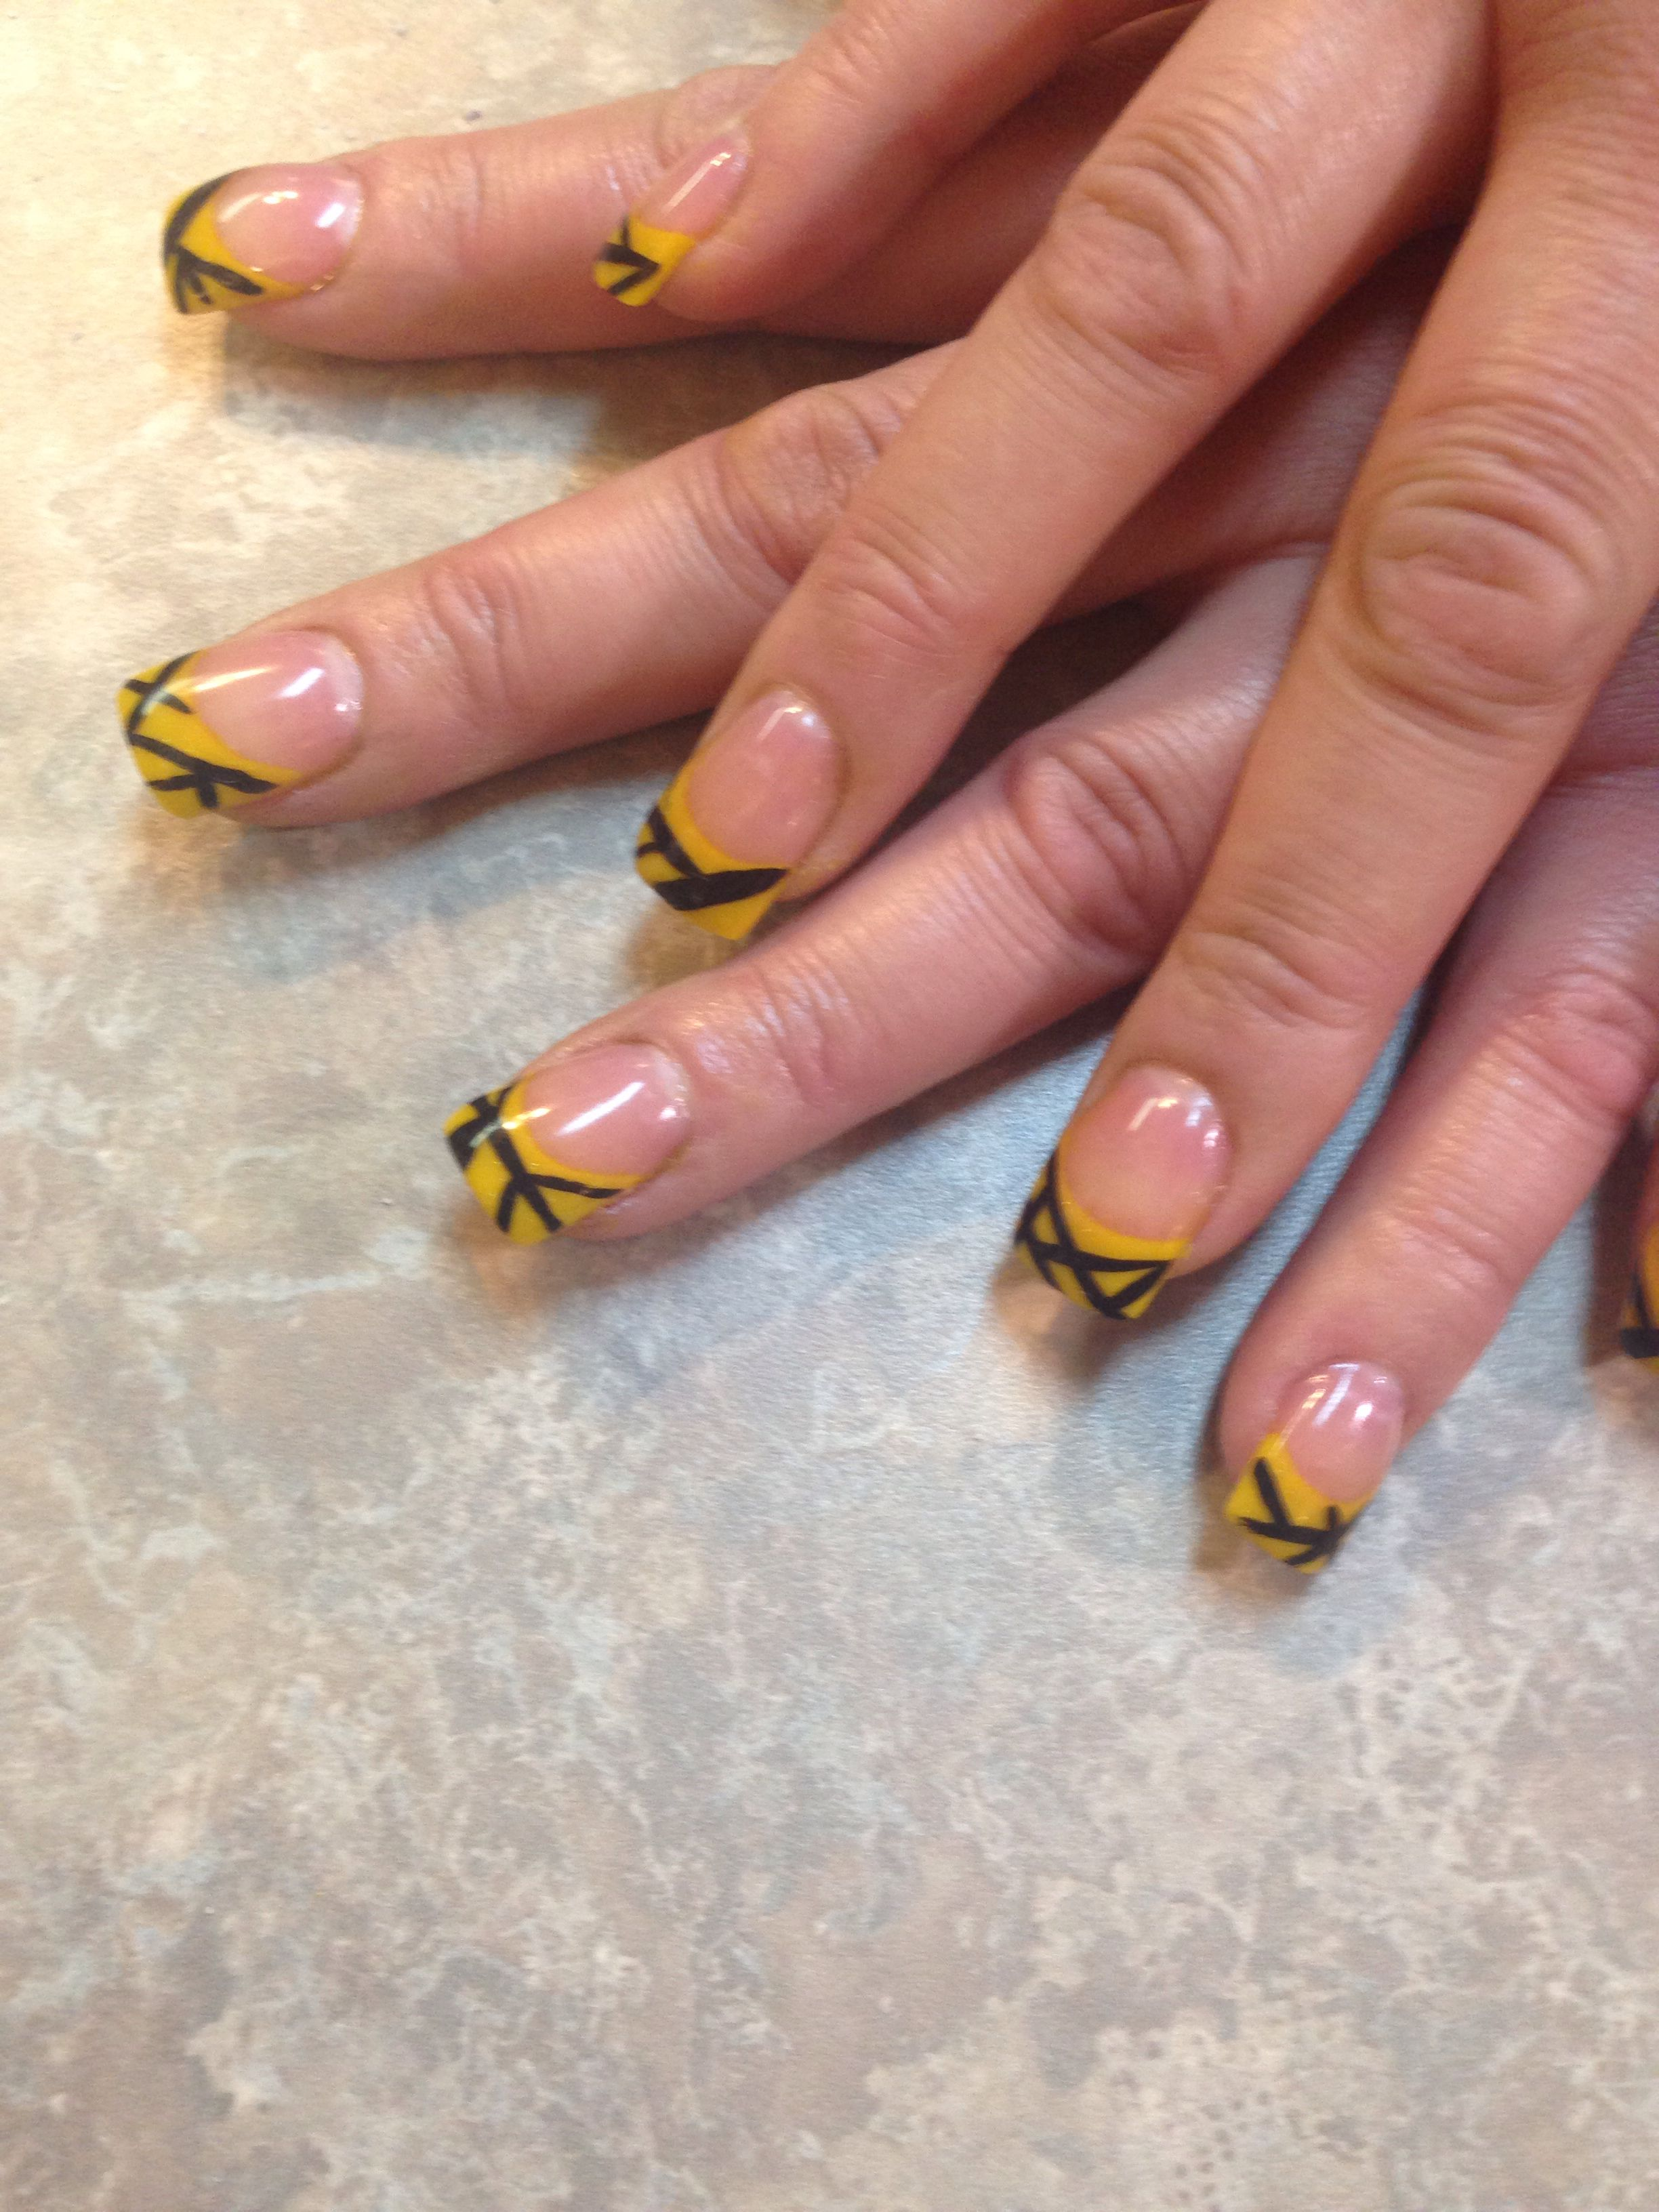 Van Halen Tribute Nailart Goddessnails Handpainted With Images Nail Art Hand Painted Nails